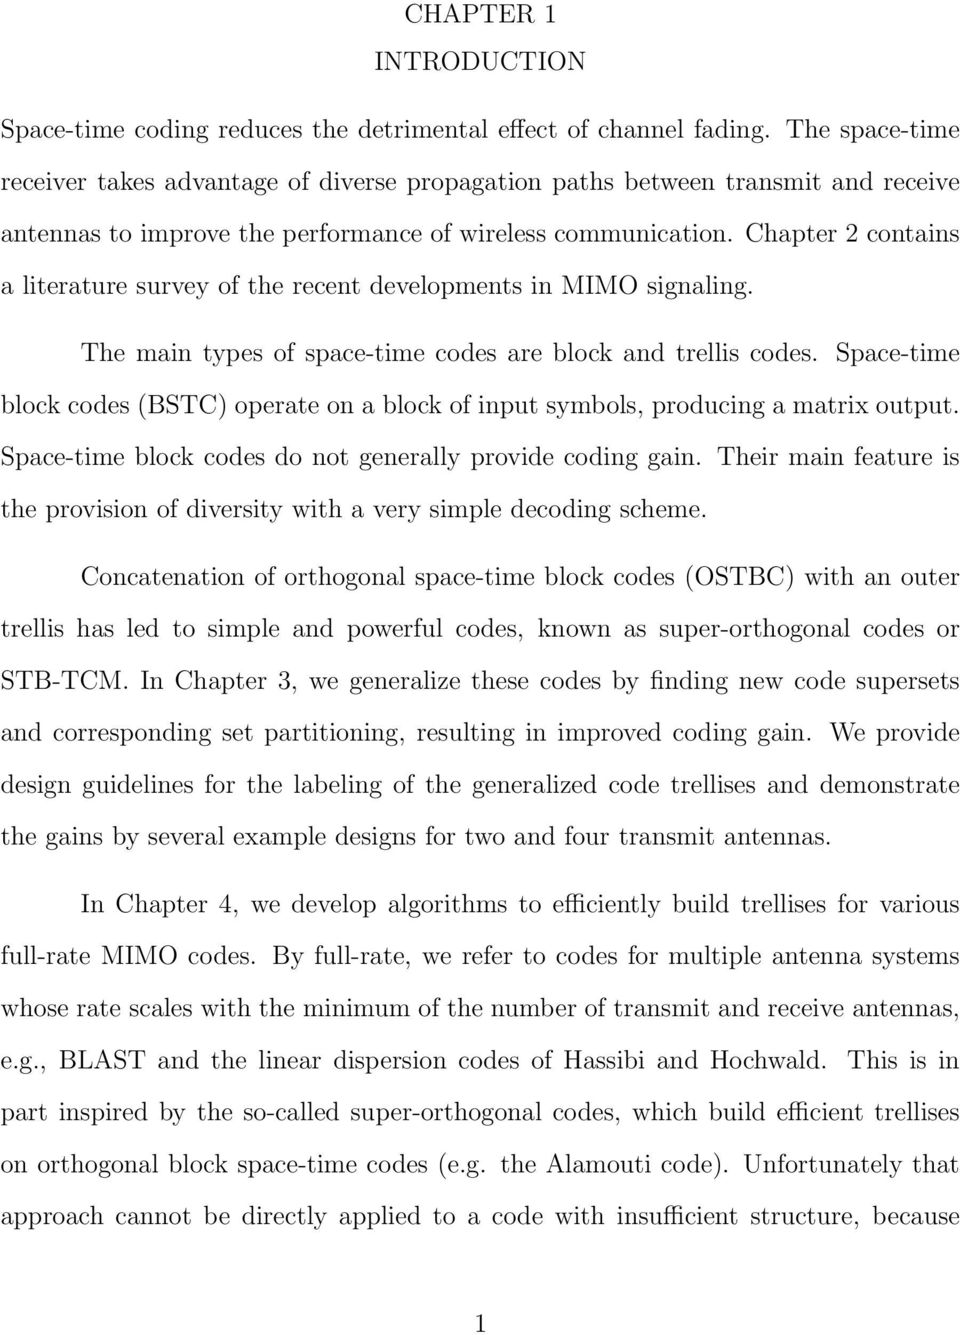 Chapter 2 contains a literature survey of the recent developments in MIMO signaling. The main types of space-time codes are block and trellis codes.